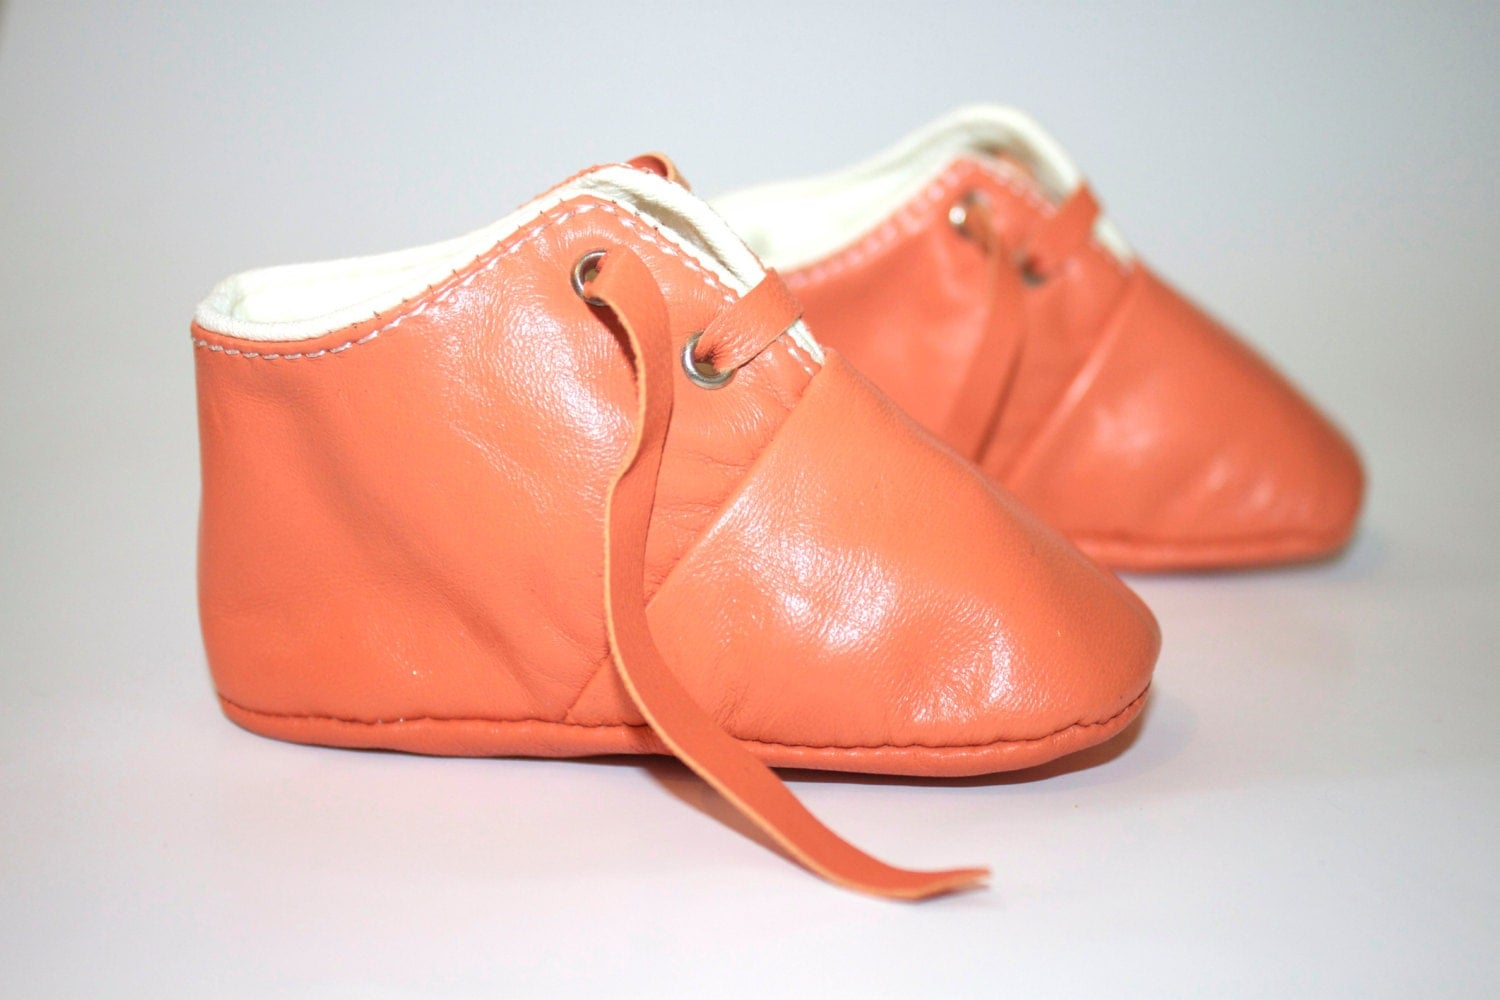 12 18 Months Slippers Baby Shoes Lamb Leather orange peach